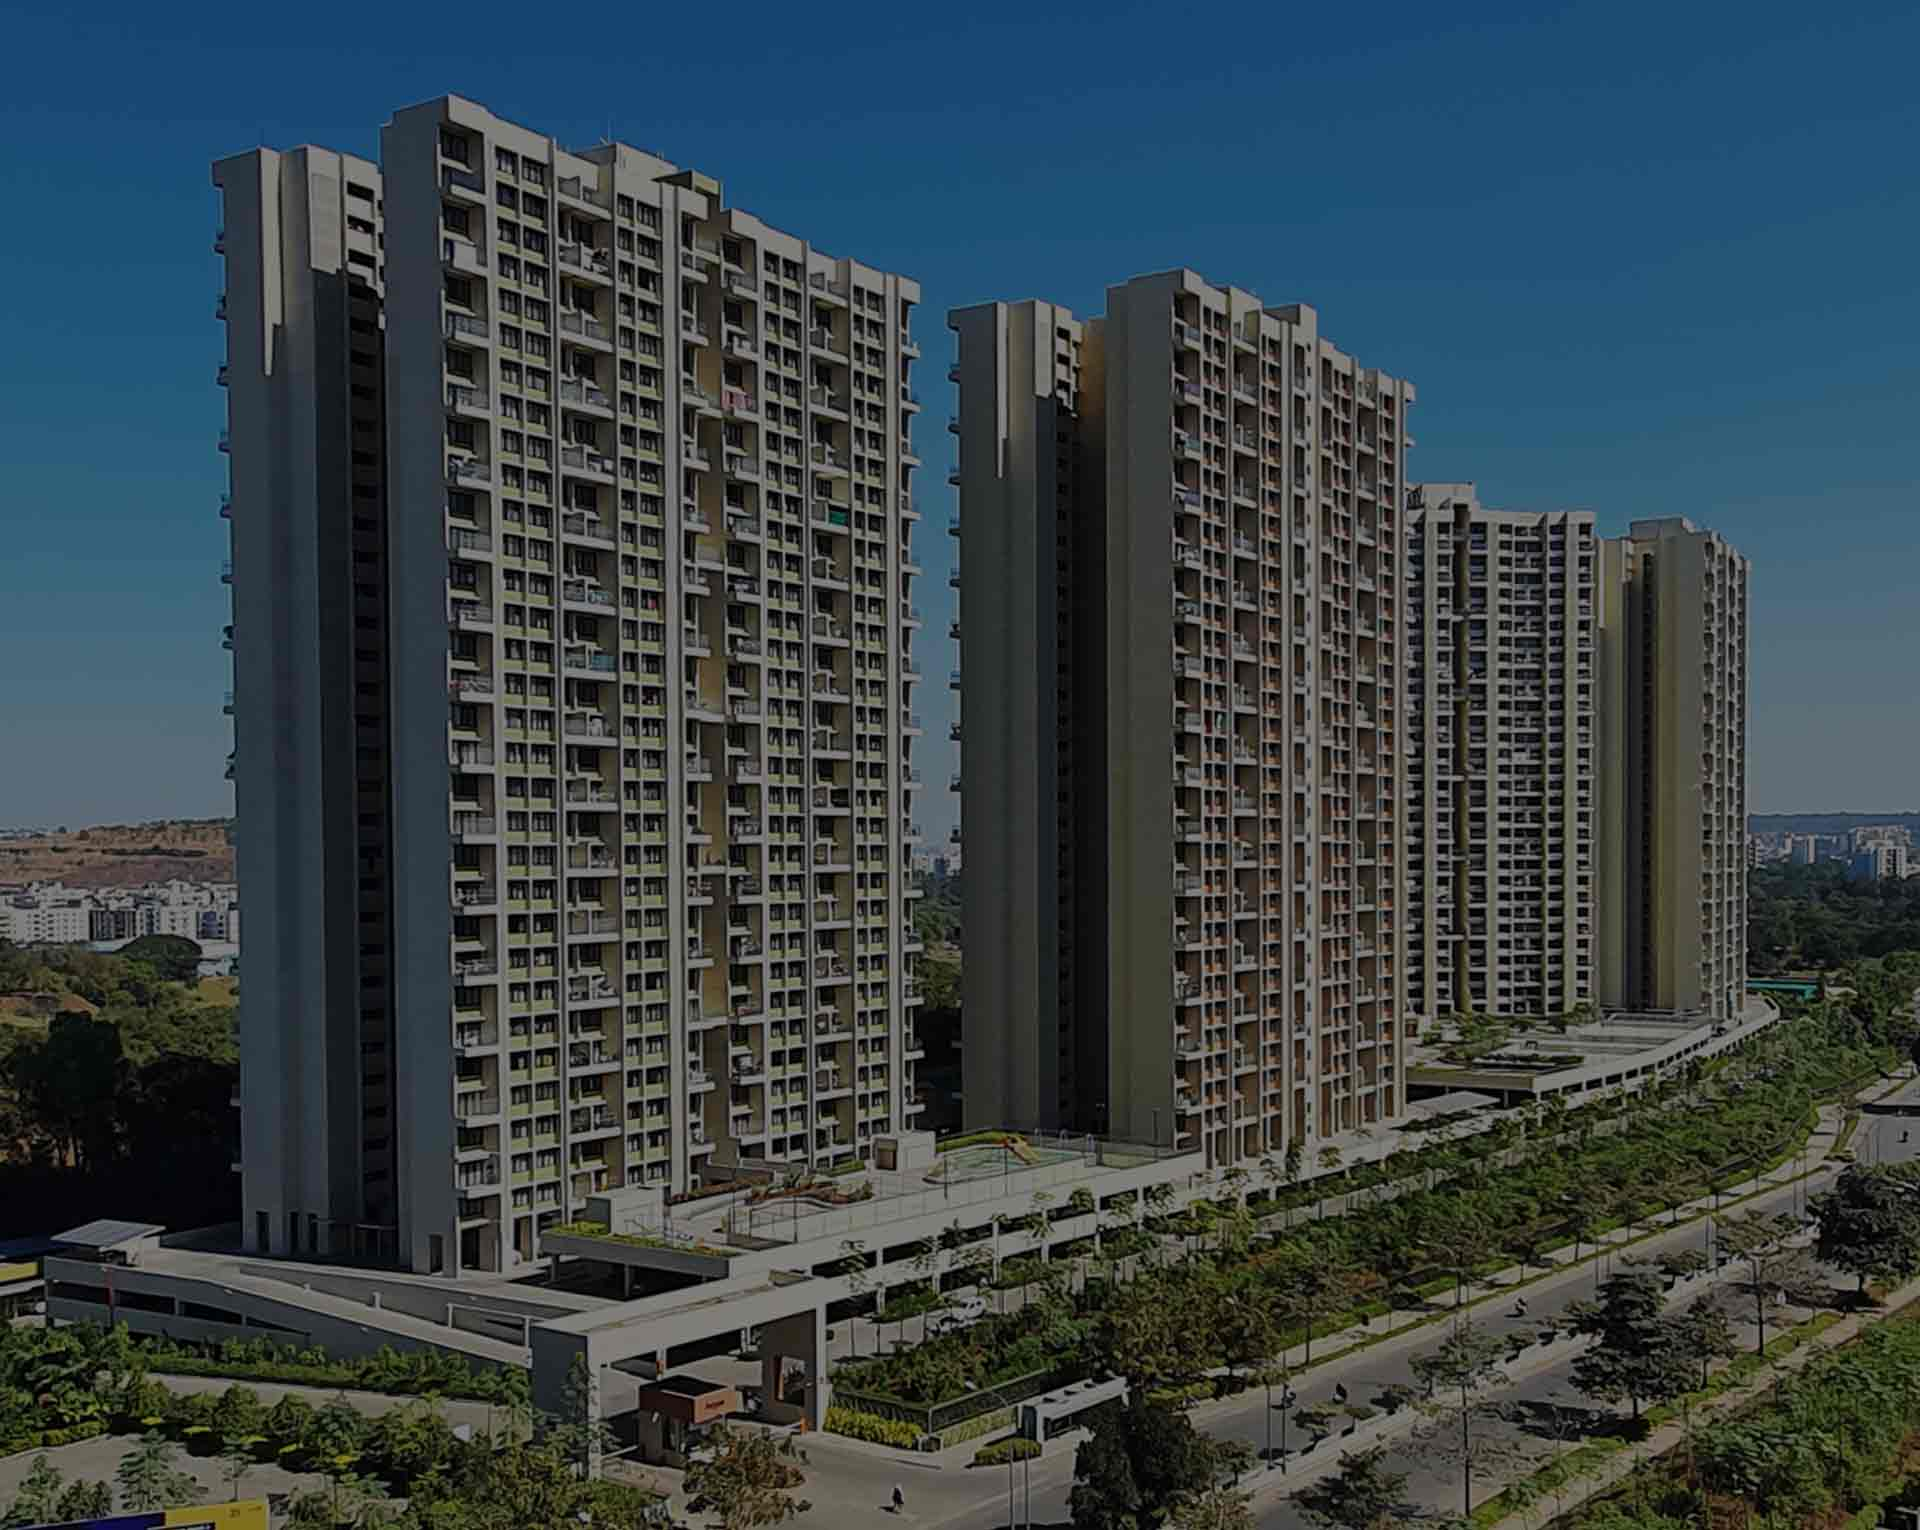 3 bhk flats in sinhagad road pune